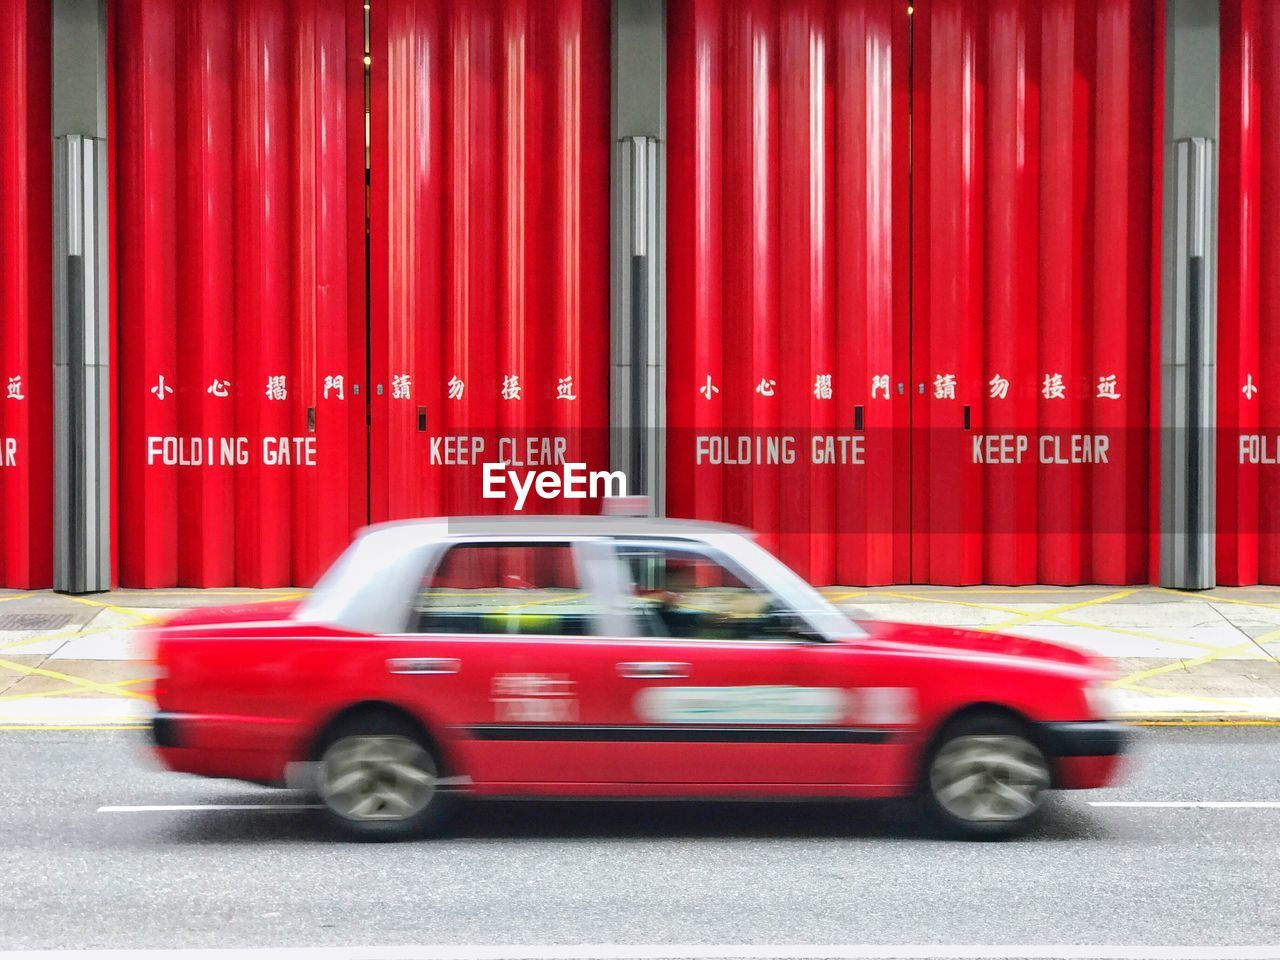 Blurred image of moving taxi against red metallic gate